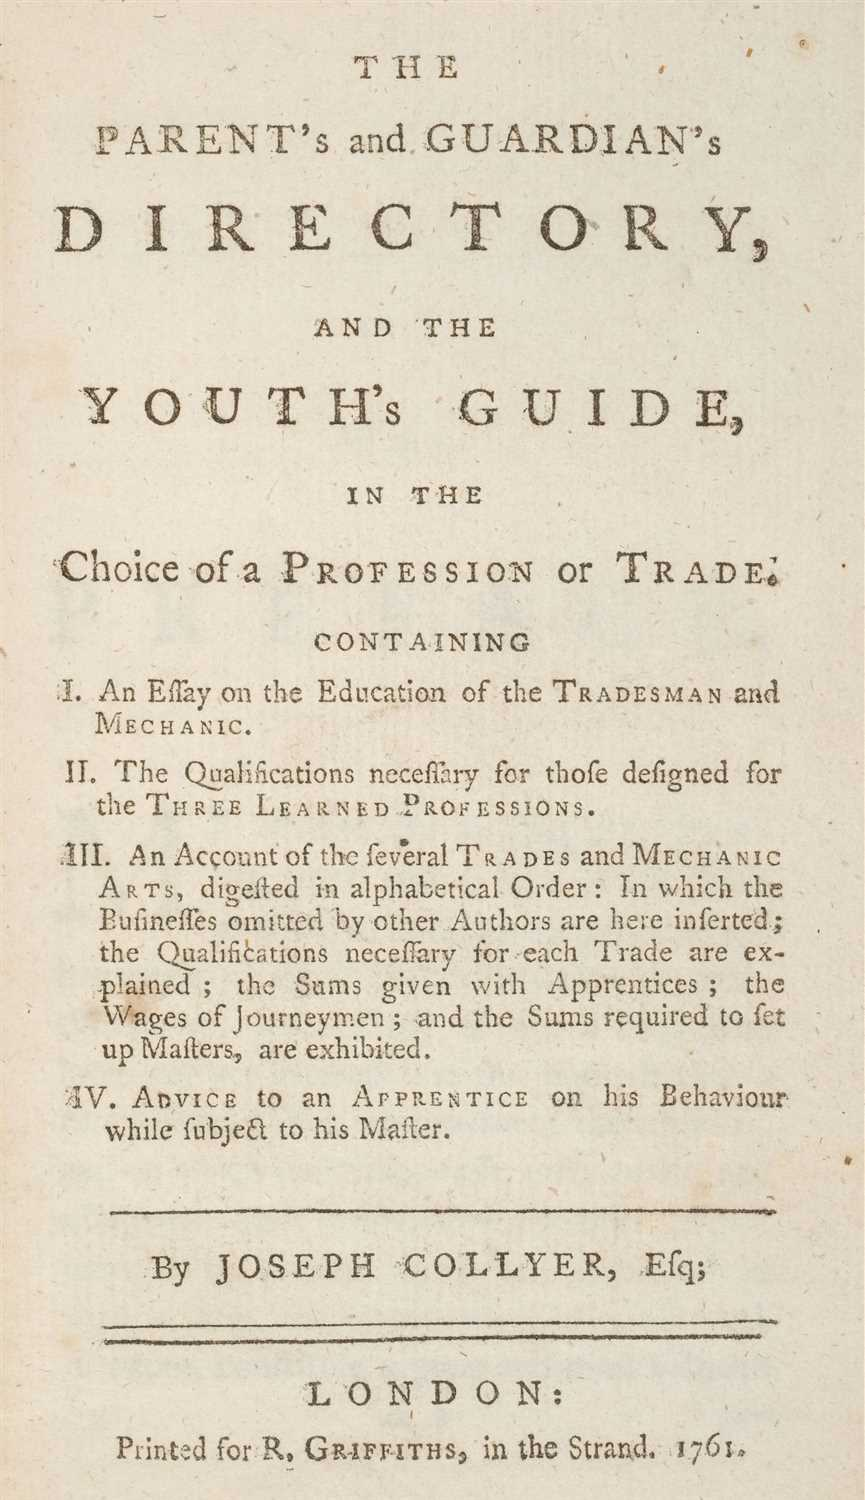 Lot 234 - Collyer (Joseph). Youth's Guide, in the Choice of a Profession or Trade, 1st edition, 1761